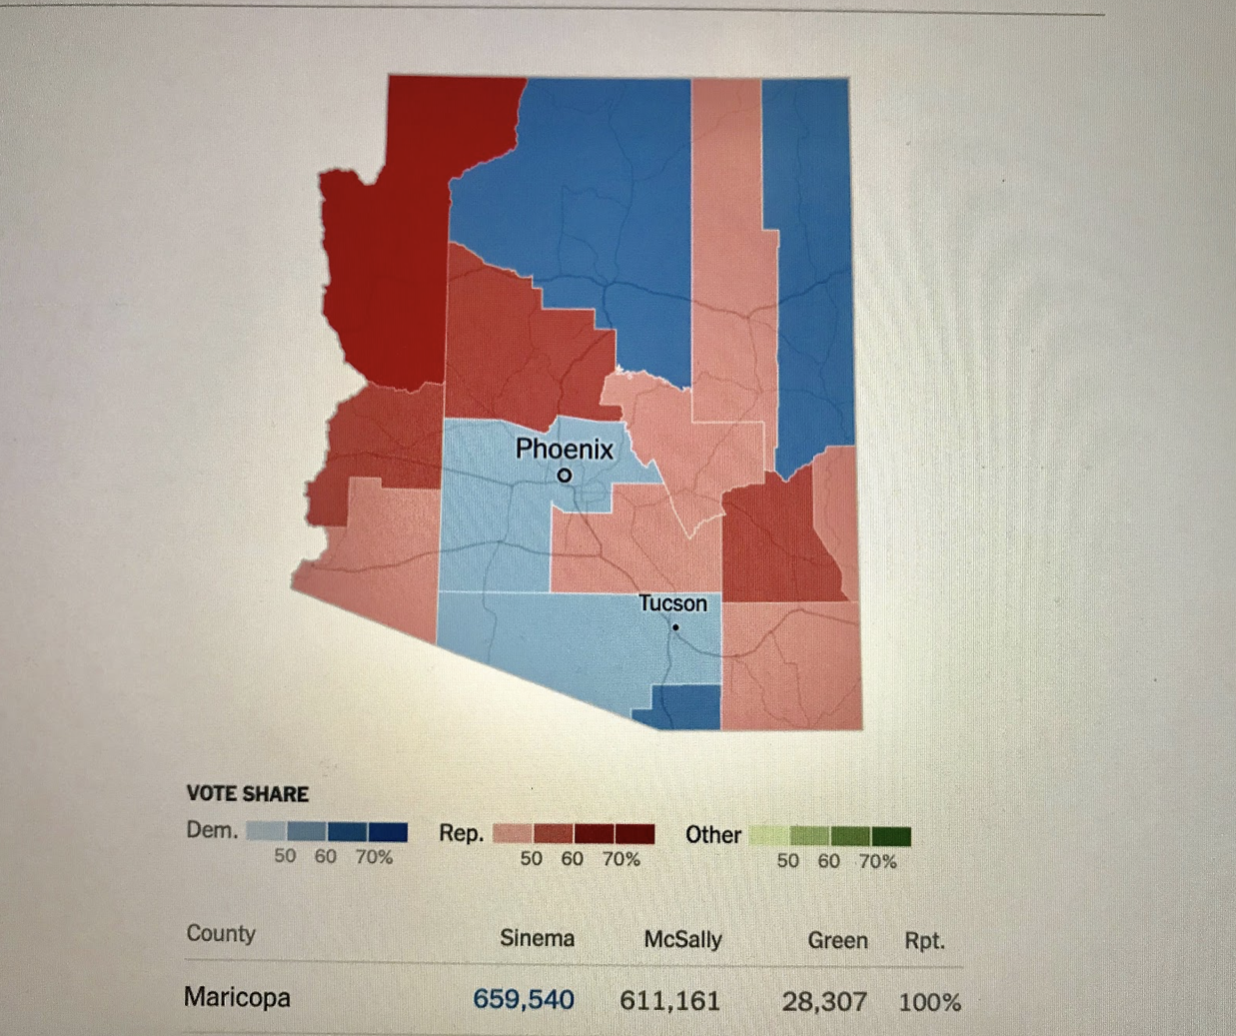 Arizona's results during the midterm elections. Traditionally a